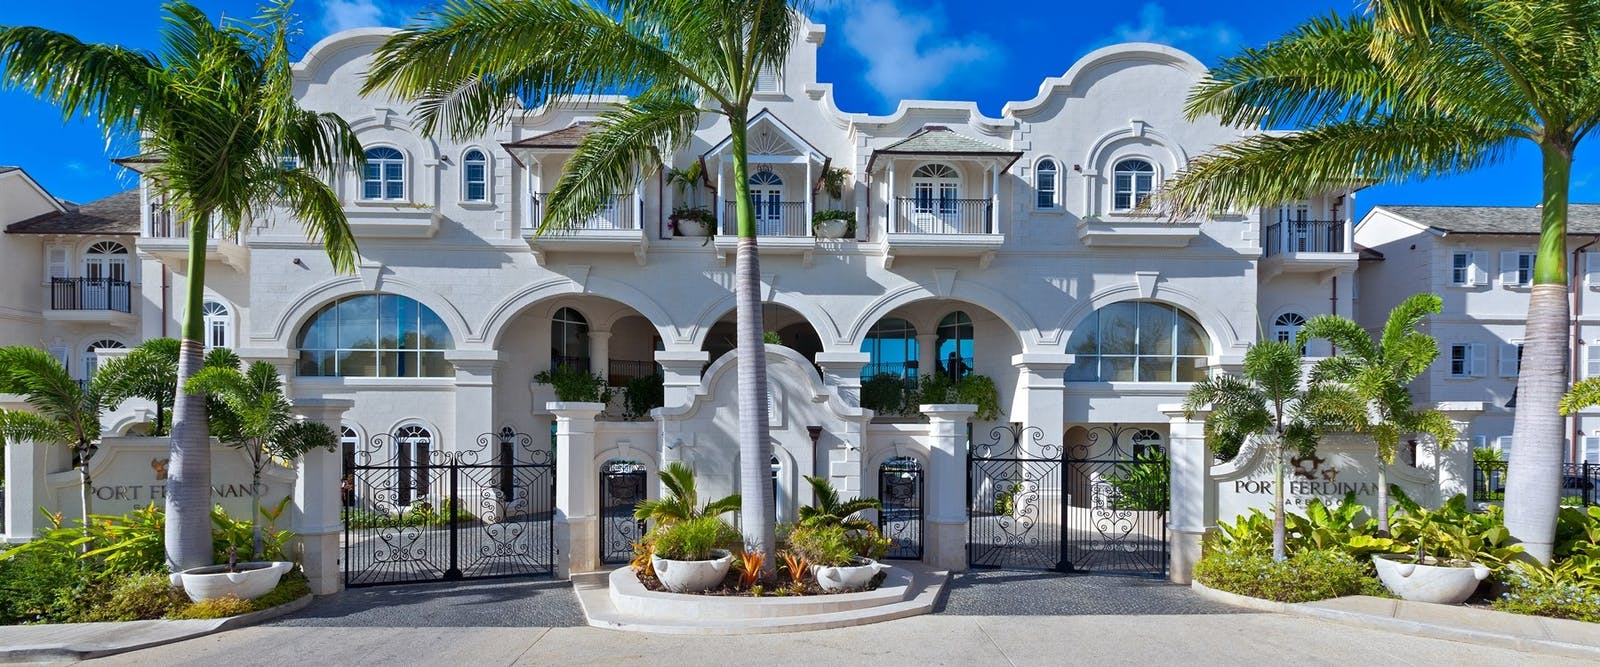 Entrance to Port Ferdinand Marina & Luxury Residences, Barbados